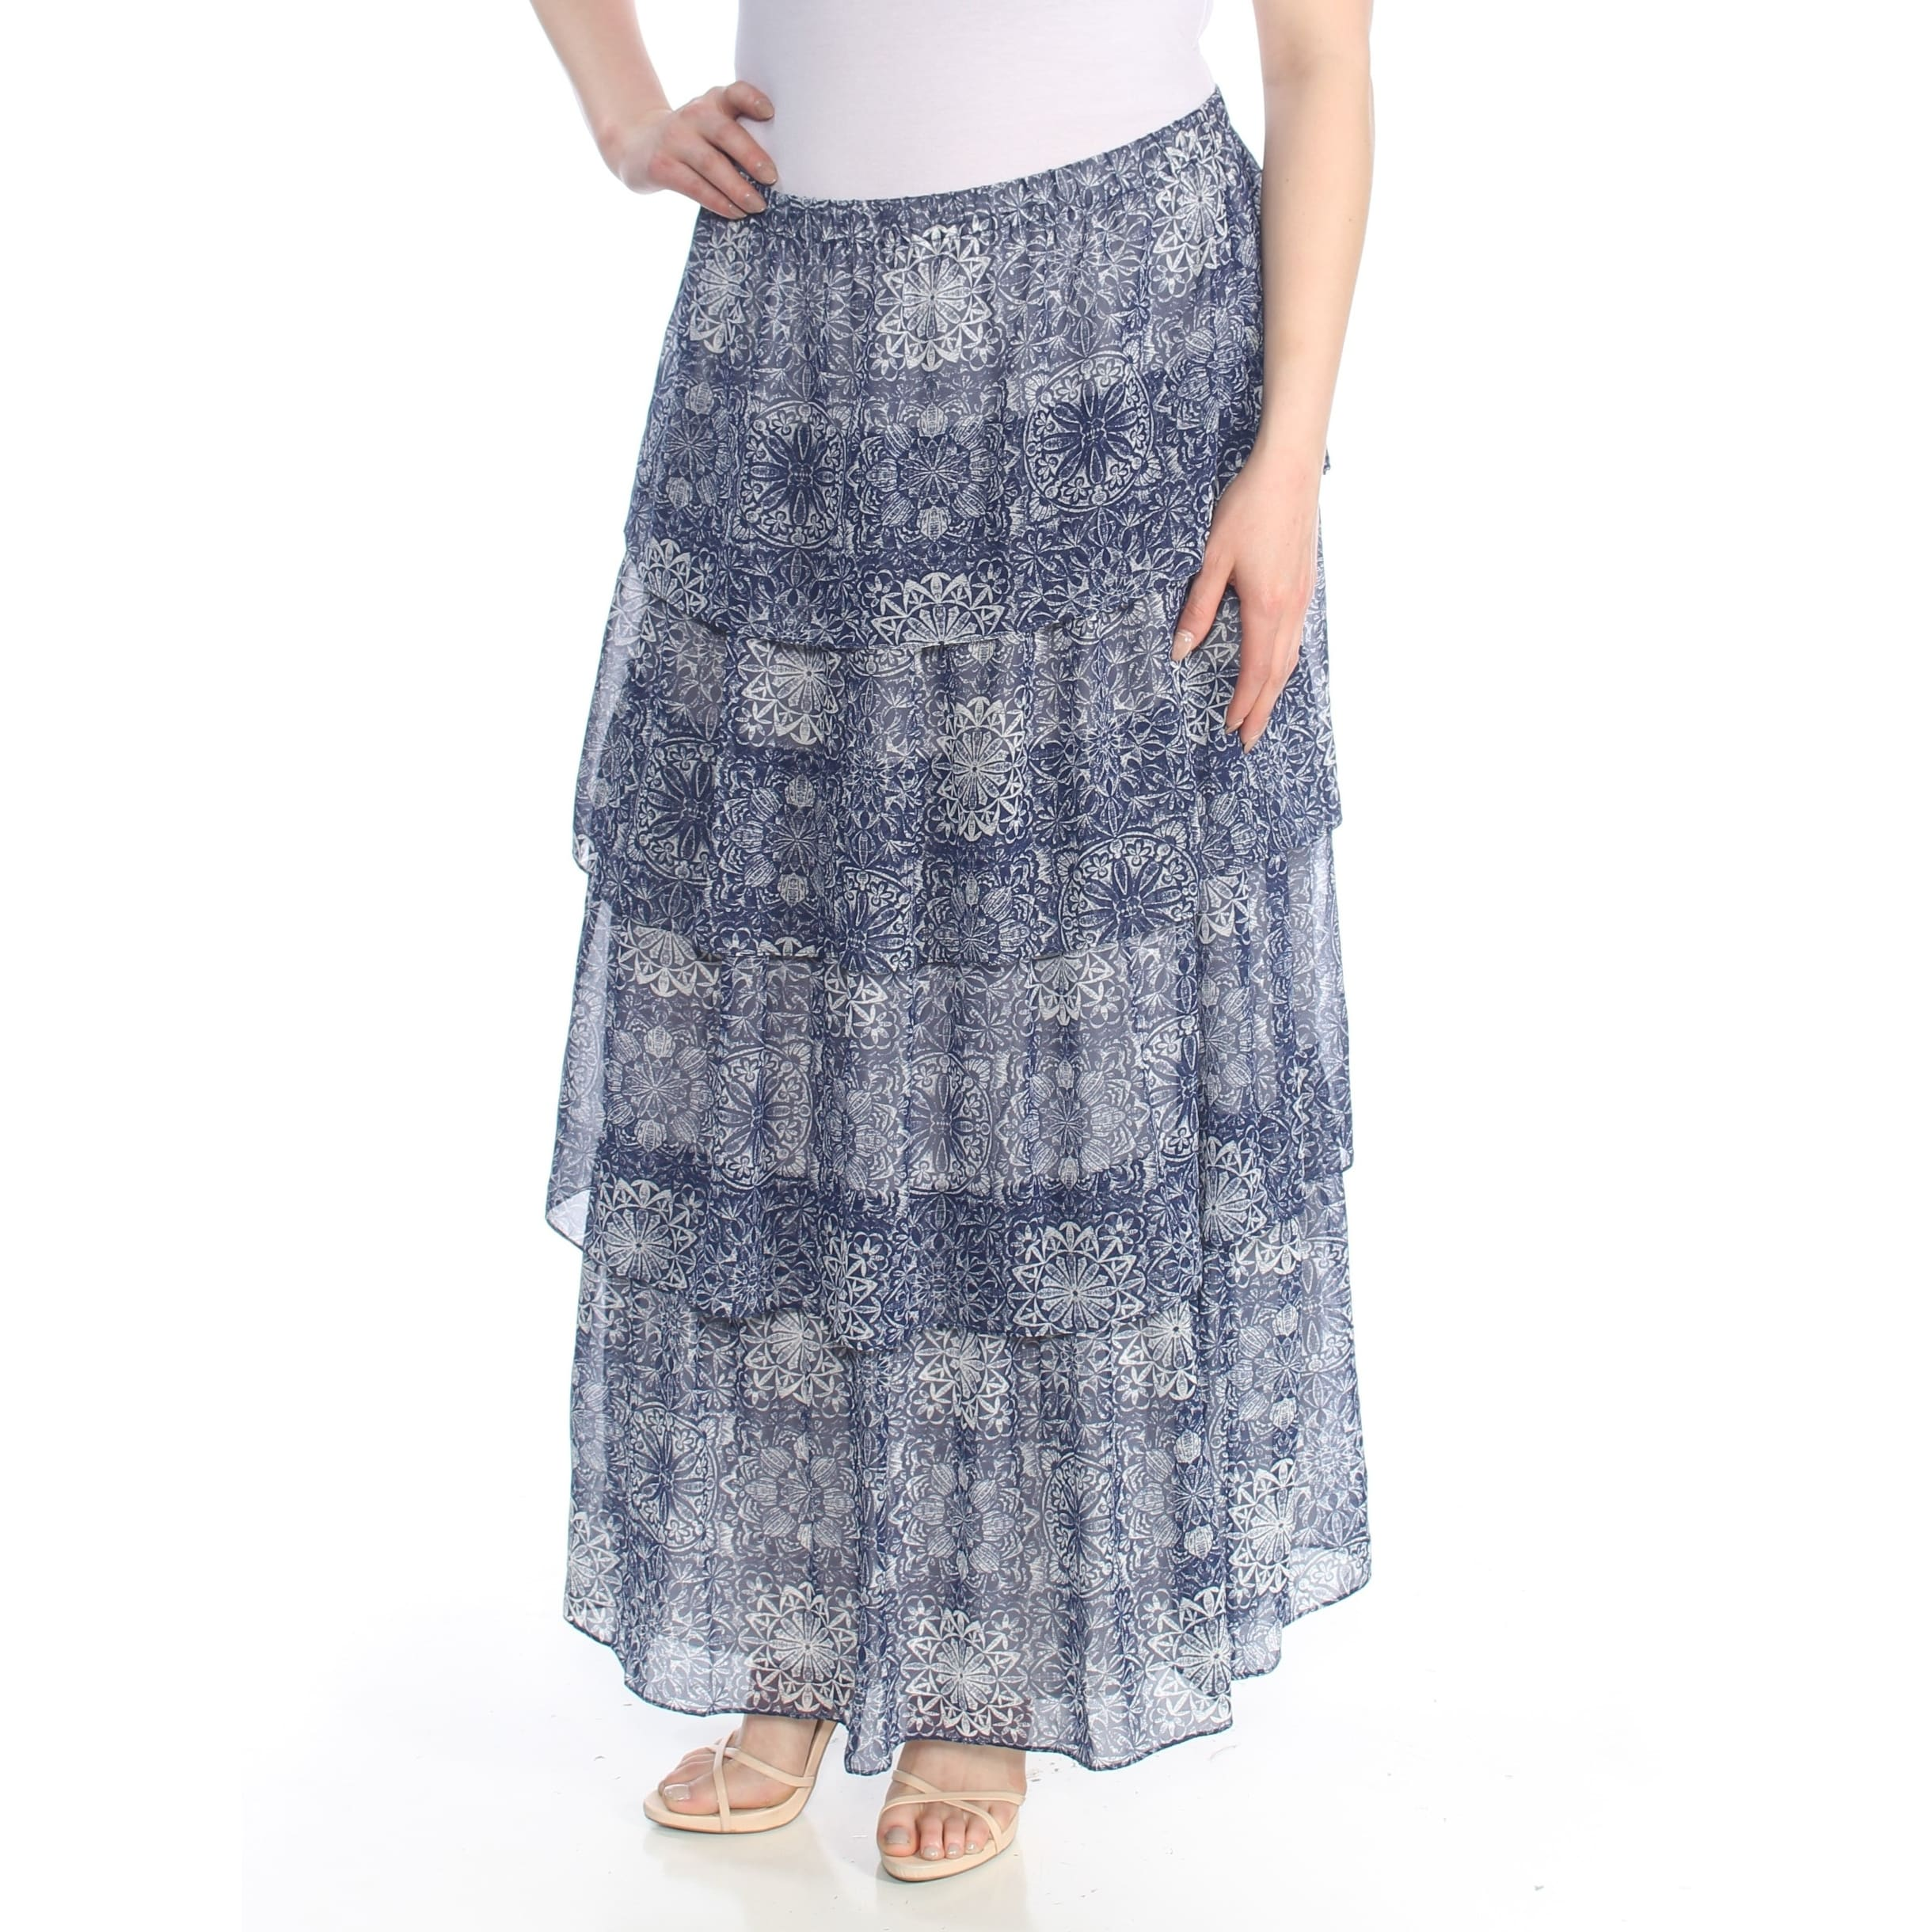 1827fb9a6 Tommy Hilfiger Women's Skirts - Macy's